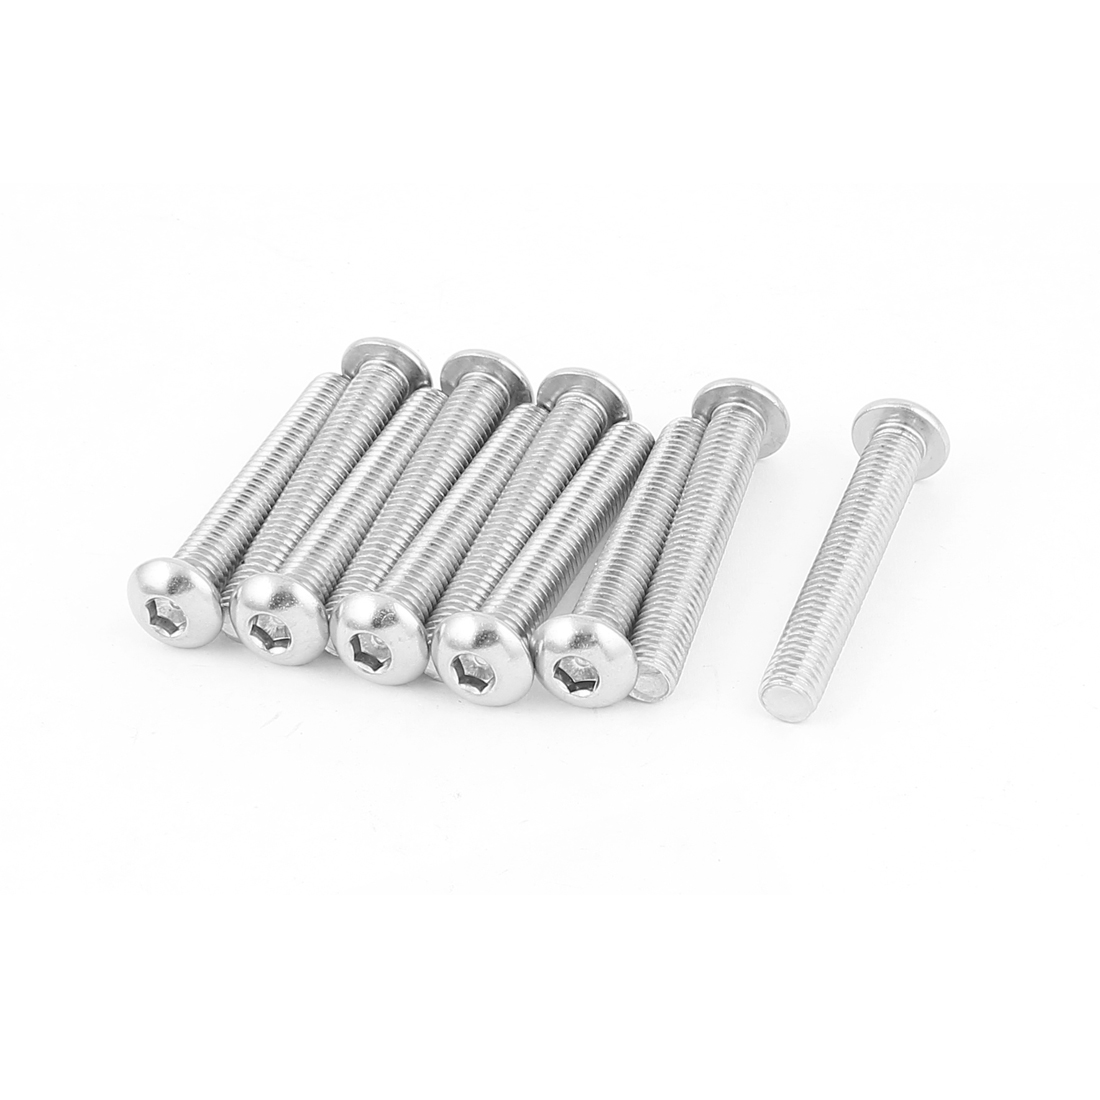 Full Thread Stainless Steel Button Head Socket Cap Screw Silver Tone M8 x 50mm 10 Pcs